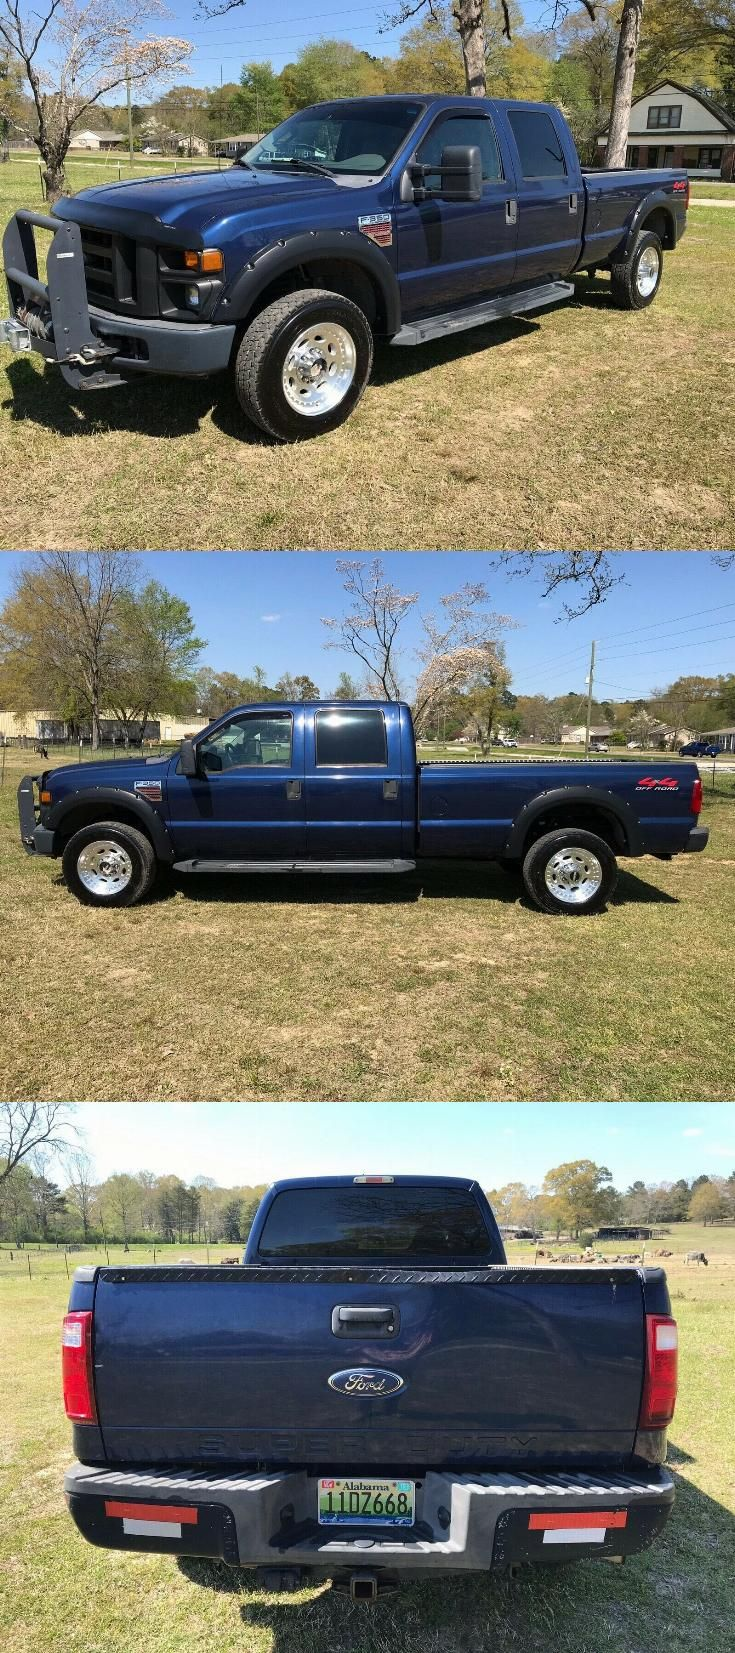 Pin on Lifted trucks for sale